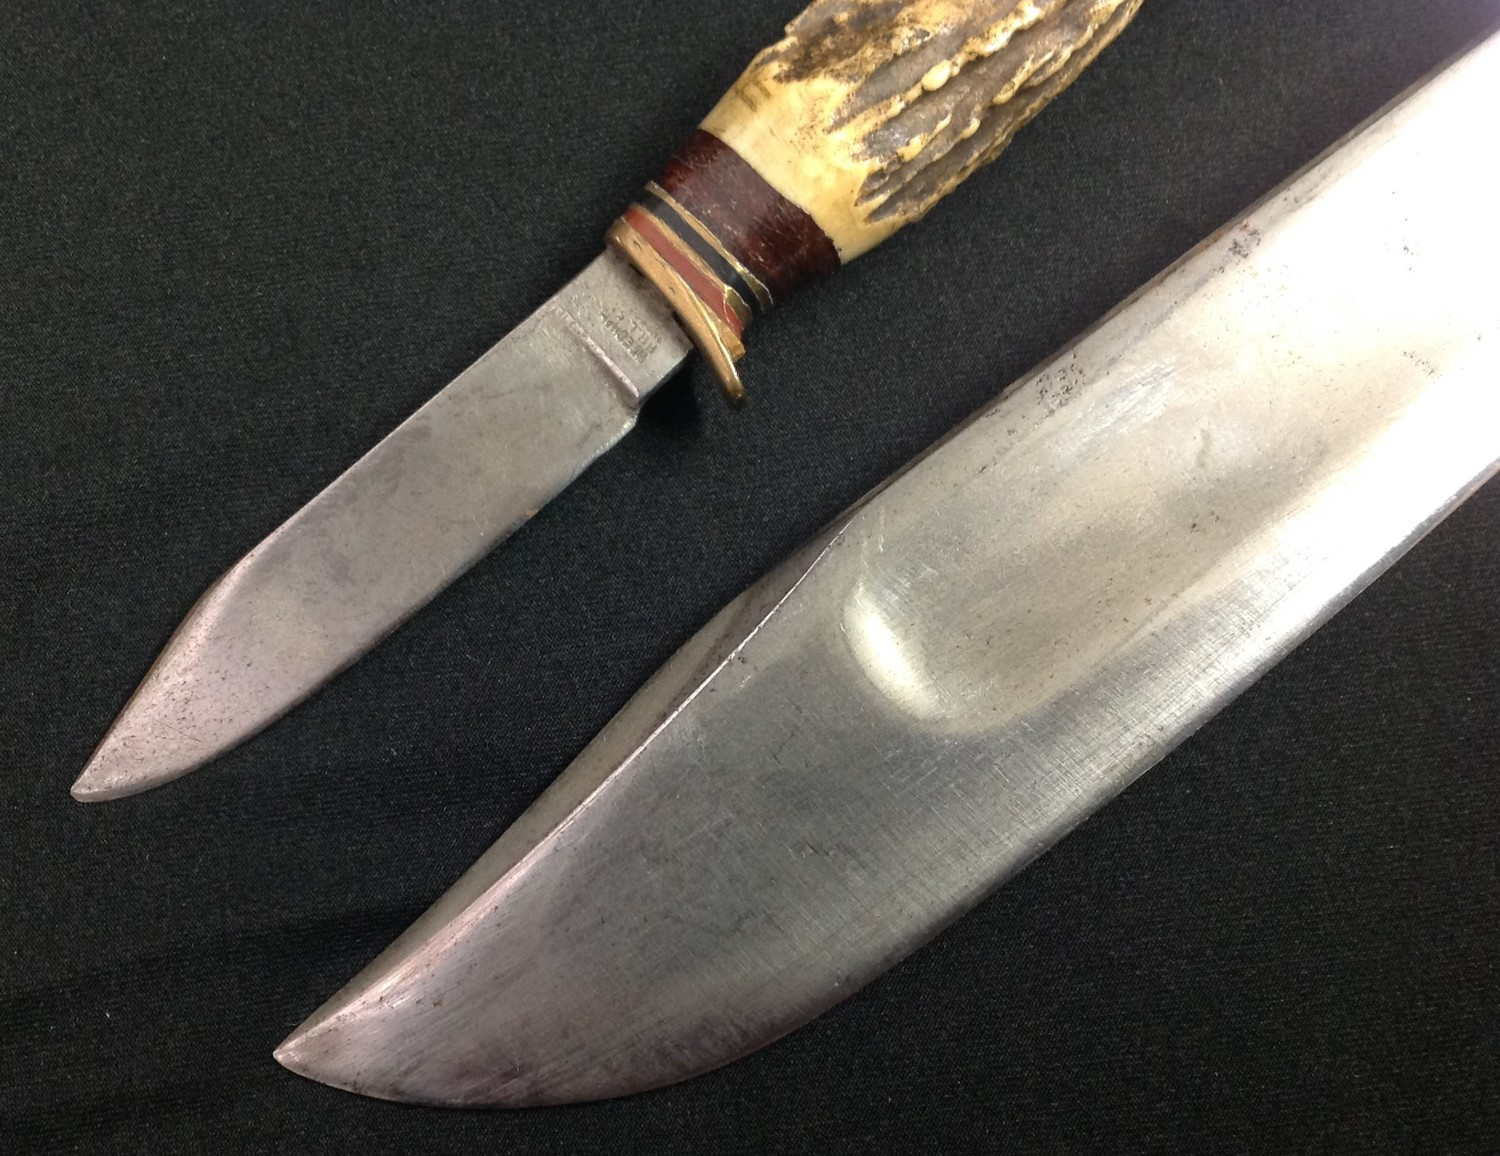 """Hunting Knife with Bowie style blade with fuller 199mm in length maker marked """"William Rodgers I Cut - Image 3 of 5"""